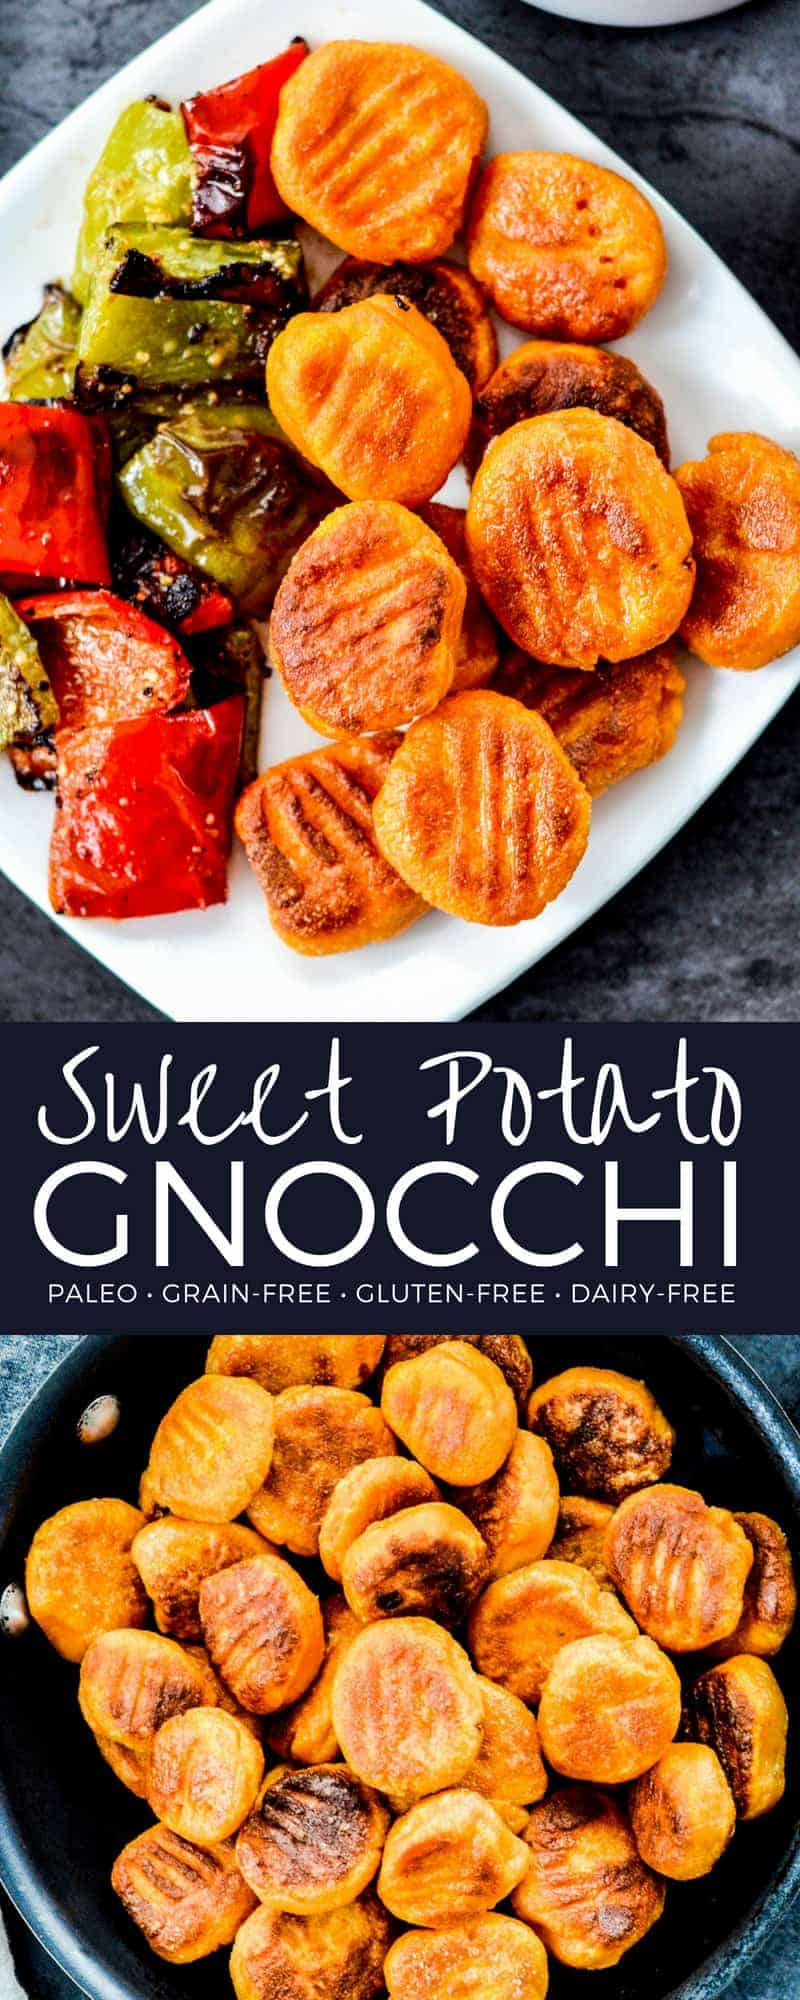 Paleo Sweet Potato Gnocchi Recipe! Made with only 6 ingredients this delicious homemade pasta is gluten-free, grain-free & dairy-free! It's boiled then browned in olive oil for an extra special, rich flavor and perfect texture! #paleo #sweetpotato #gnocchi #homemade #recipe #glutenfree #grainfree #dairyfree